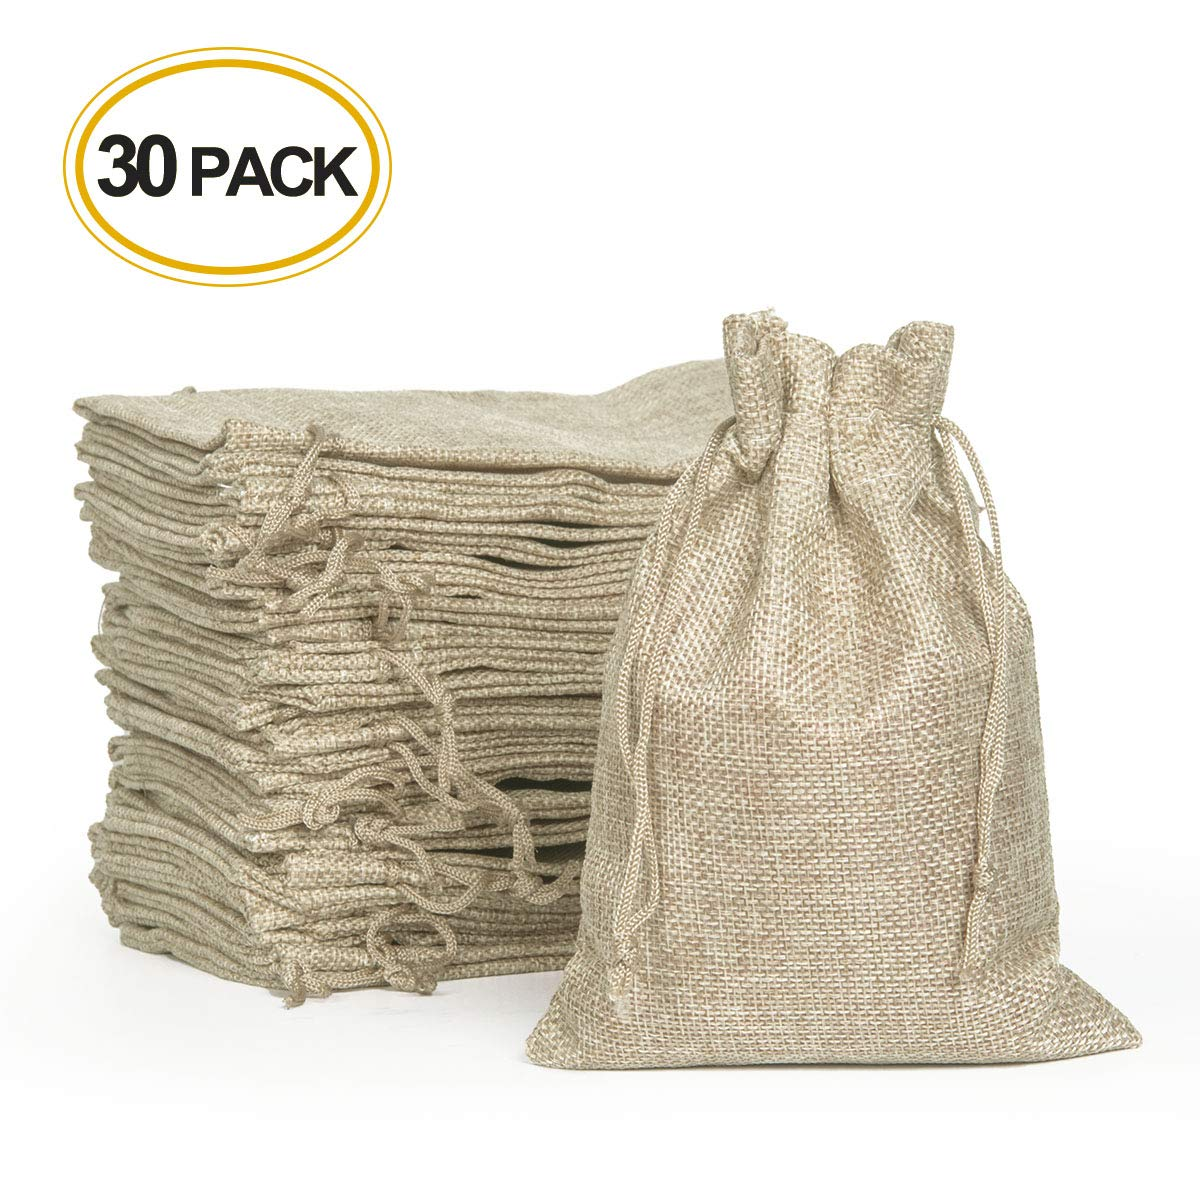 Luropa 30 pcs Burlap Bag, Gift Bags with Drawstring Jewelry Pouches Sacks and Cotton Lining for Wedding, Christmas and DIY Craft (7.1'' x 5.1'')